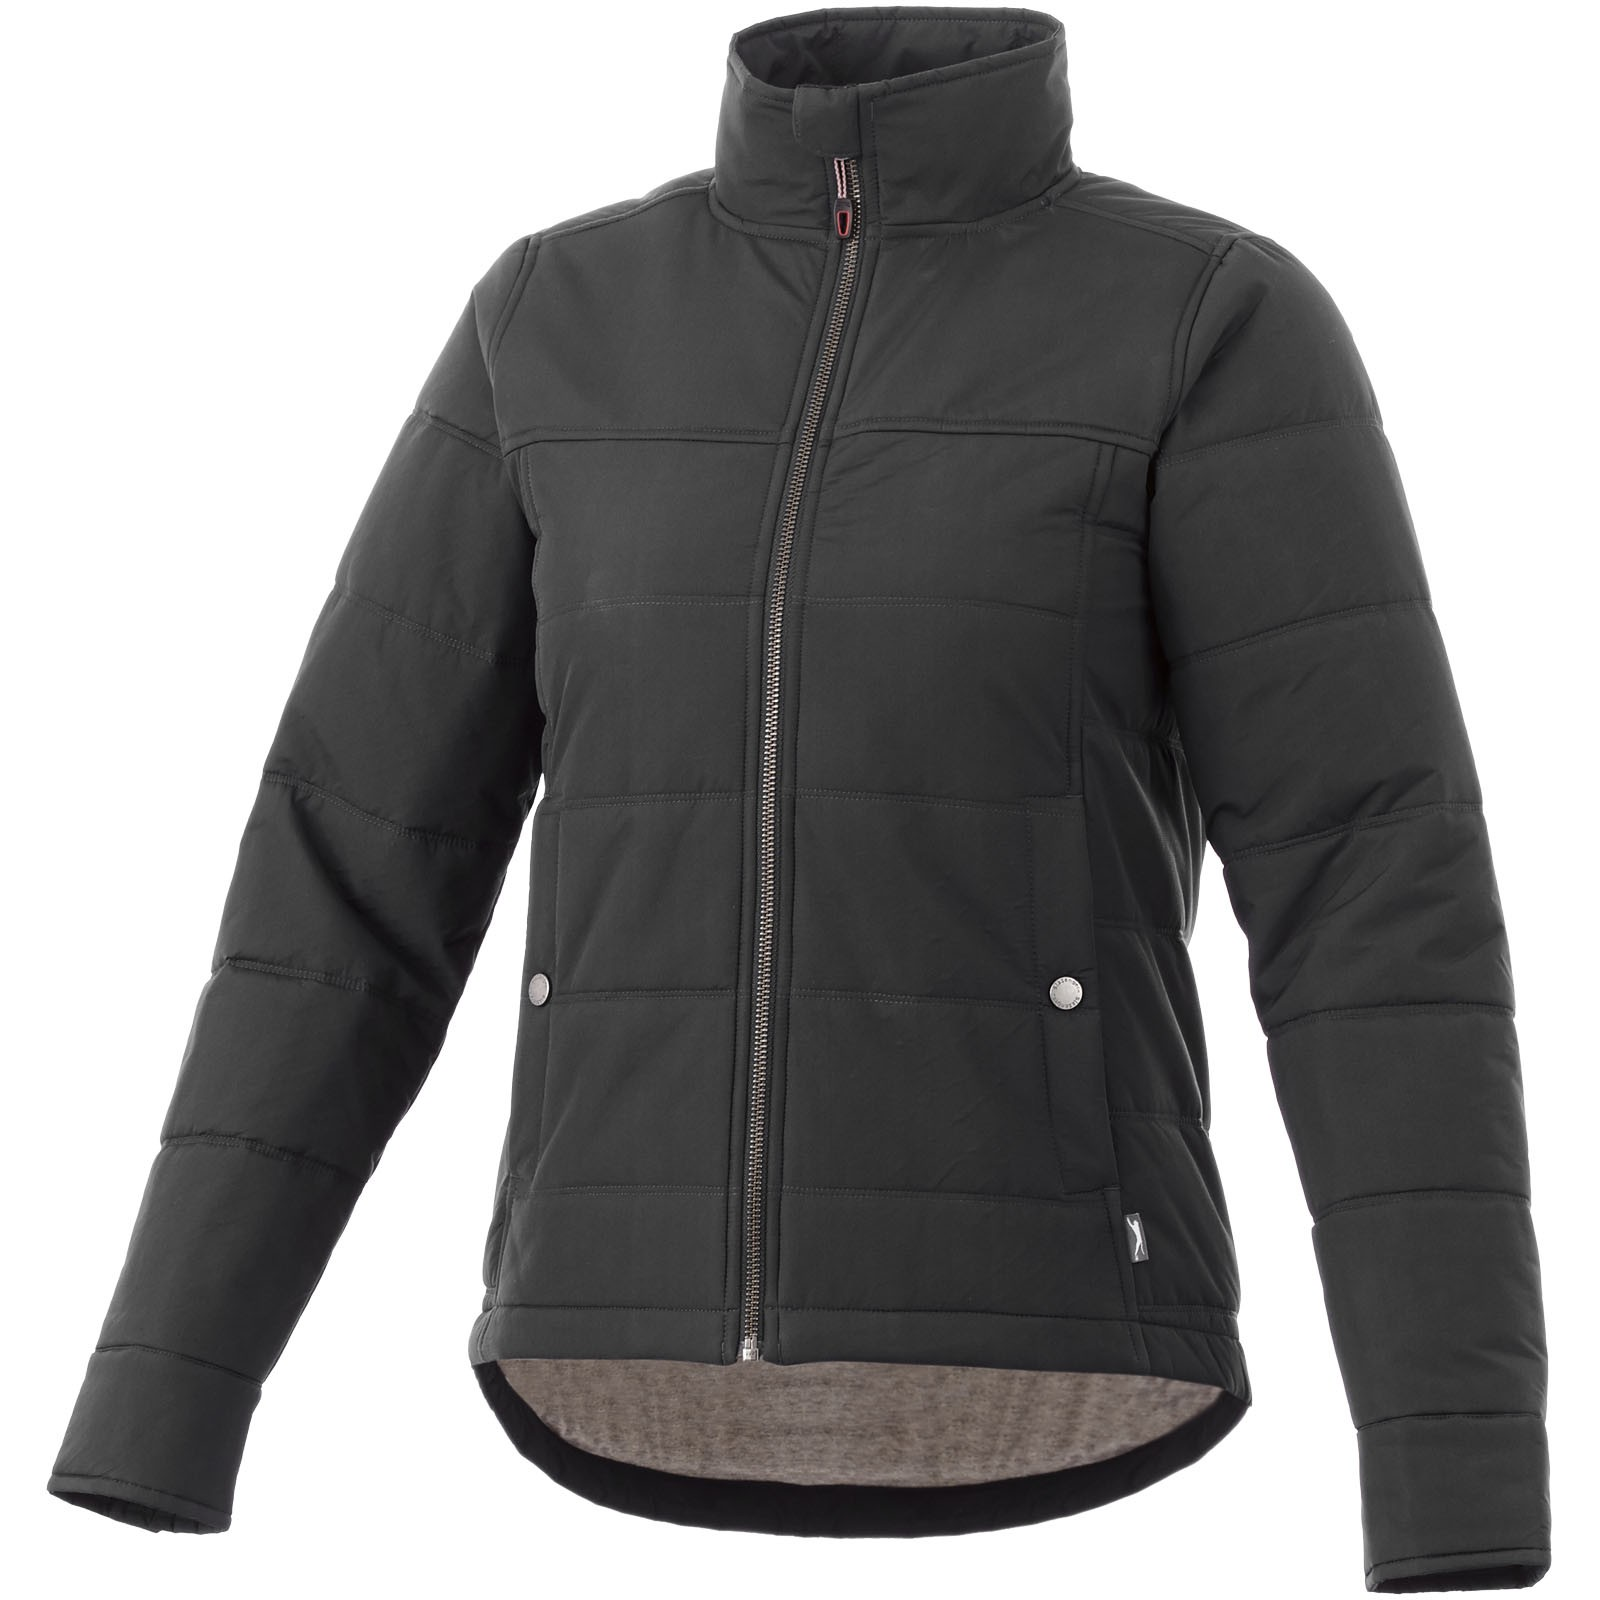 Bouncer insulated ladies jacket - Grey smoke / M